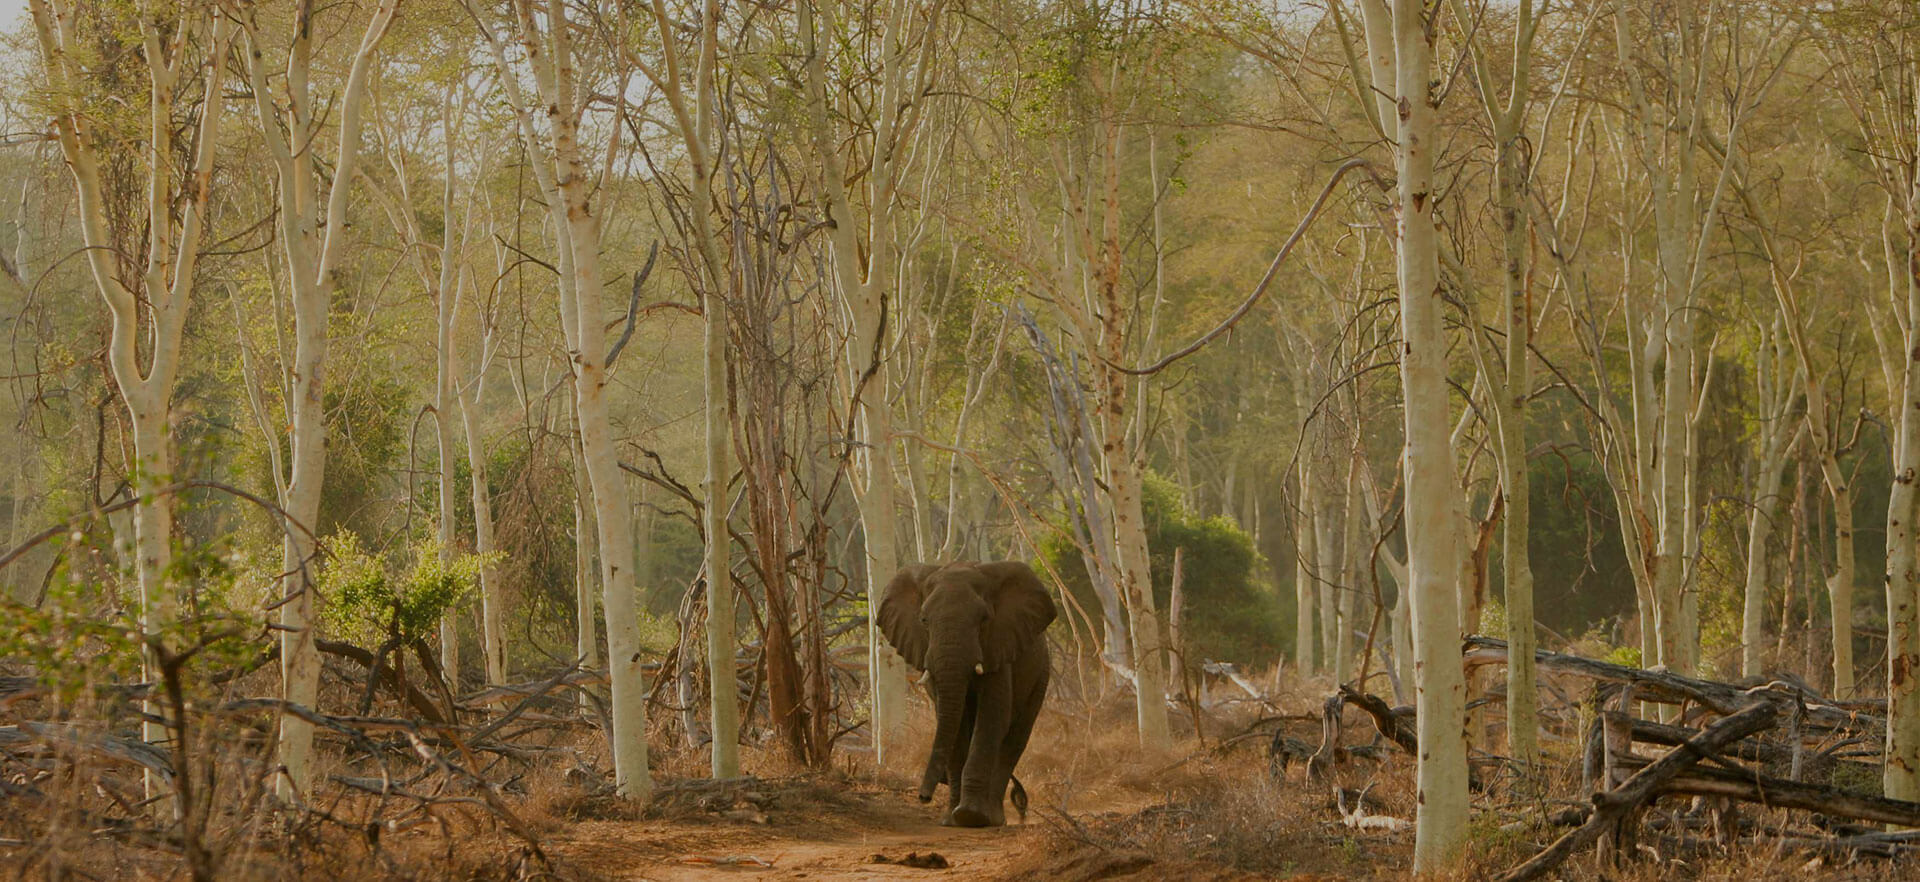 Single African elephant running in bush fever tree forest